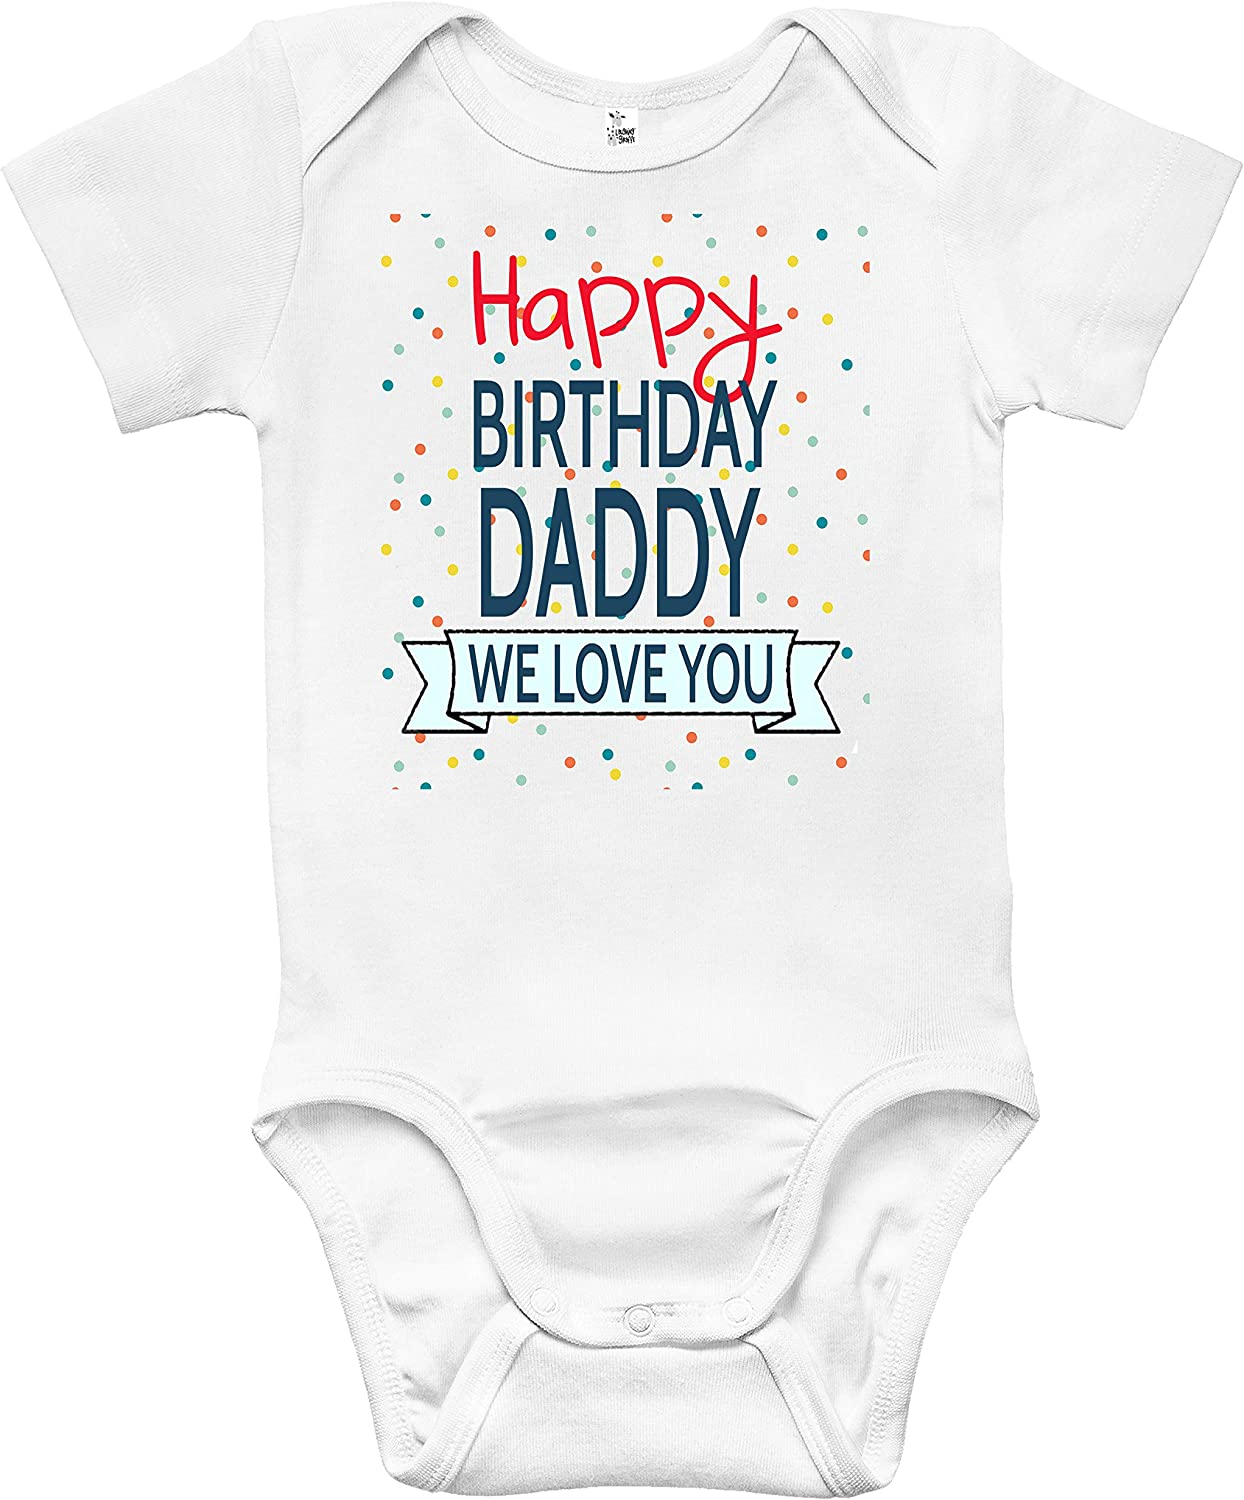 Baby Bodysuit - Happy Birthday Daddy Clothes fo We Popular standard High material Love You